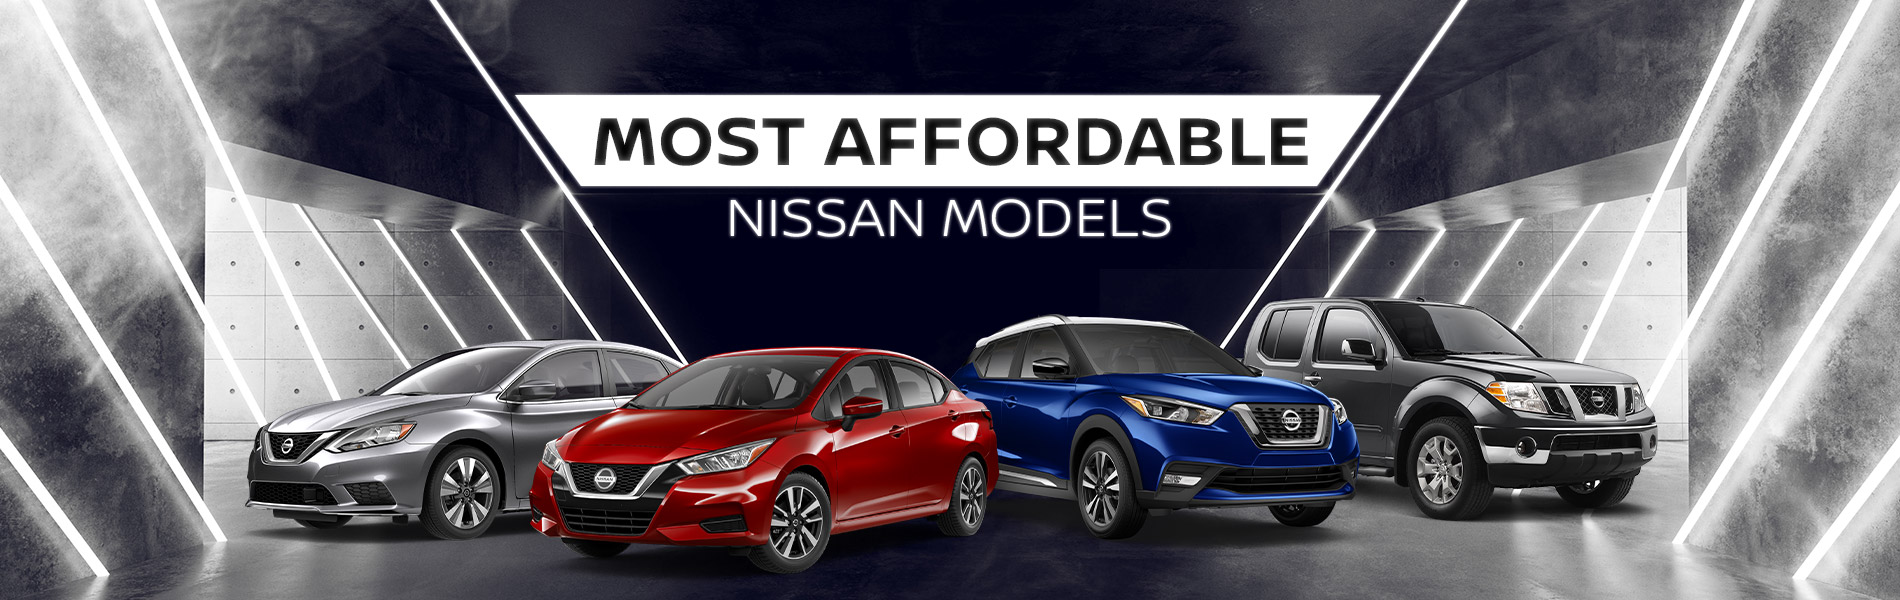 Most Affordable Nissan Models | Greenville, MS